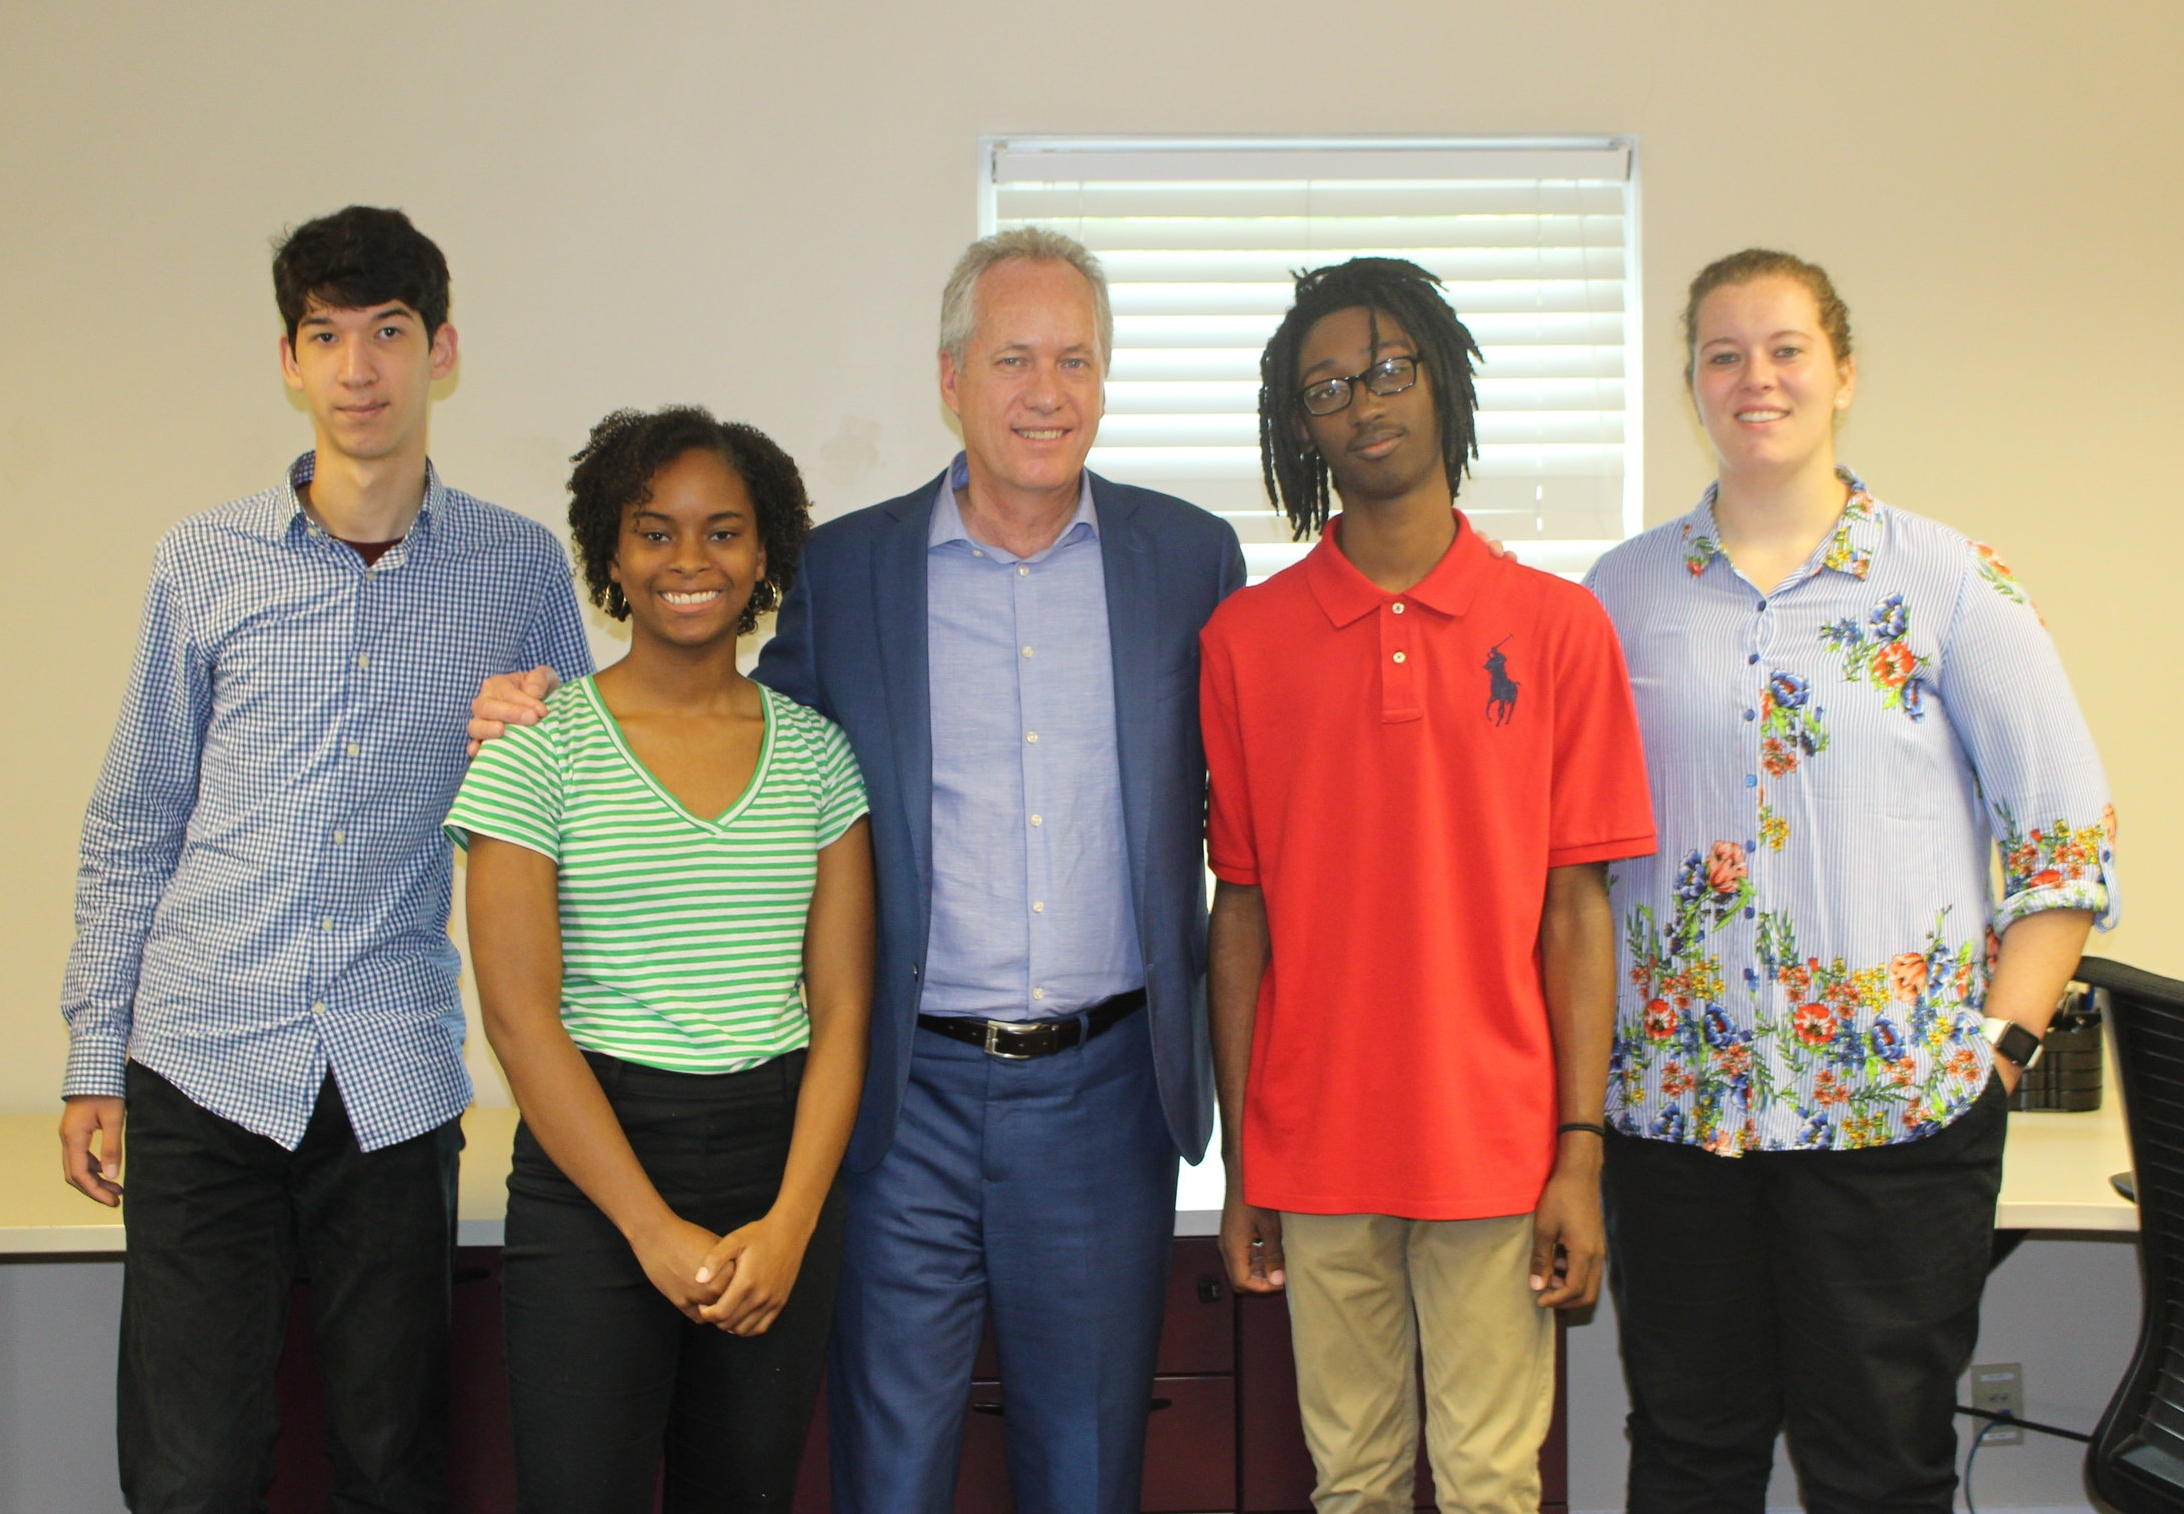 This morning, Mayor Fischer stopped by D.D. Williamson to visit their SummerWorks youth. From left to right:Jacob Keisling, Kimberly Jefferson, Mayor Fischer,Weslee Reynolds, and Maria Yeager.